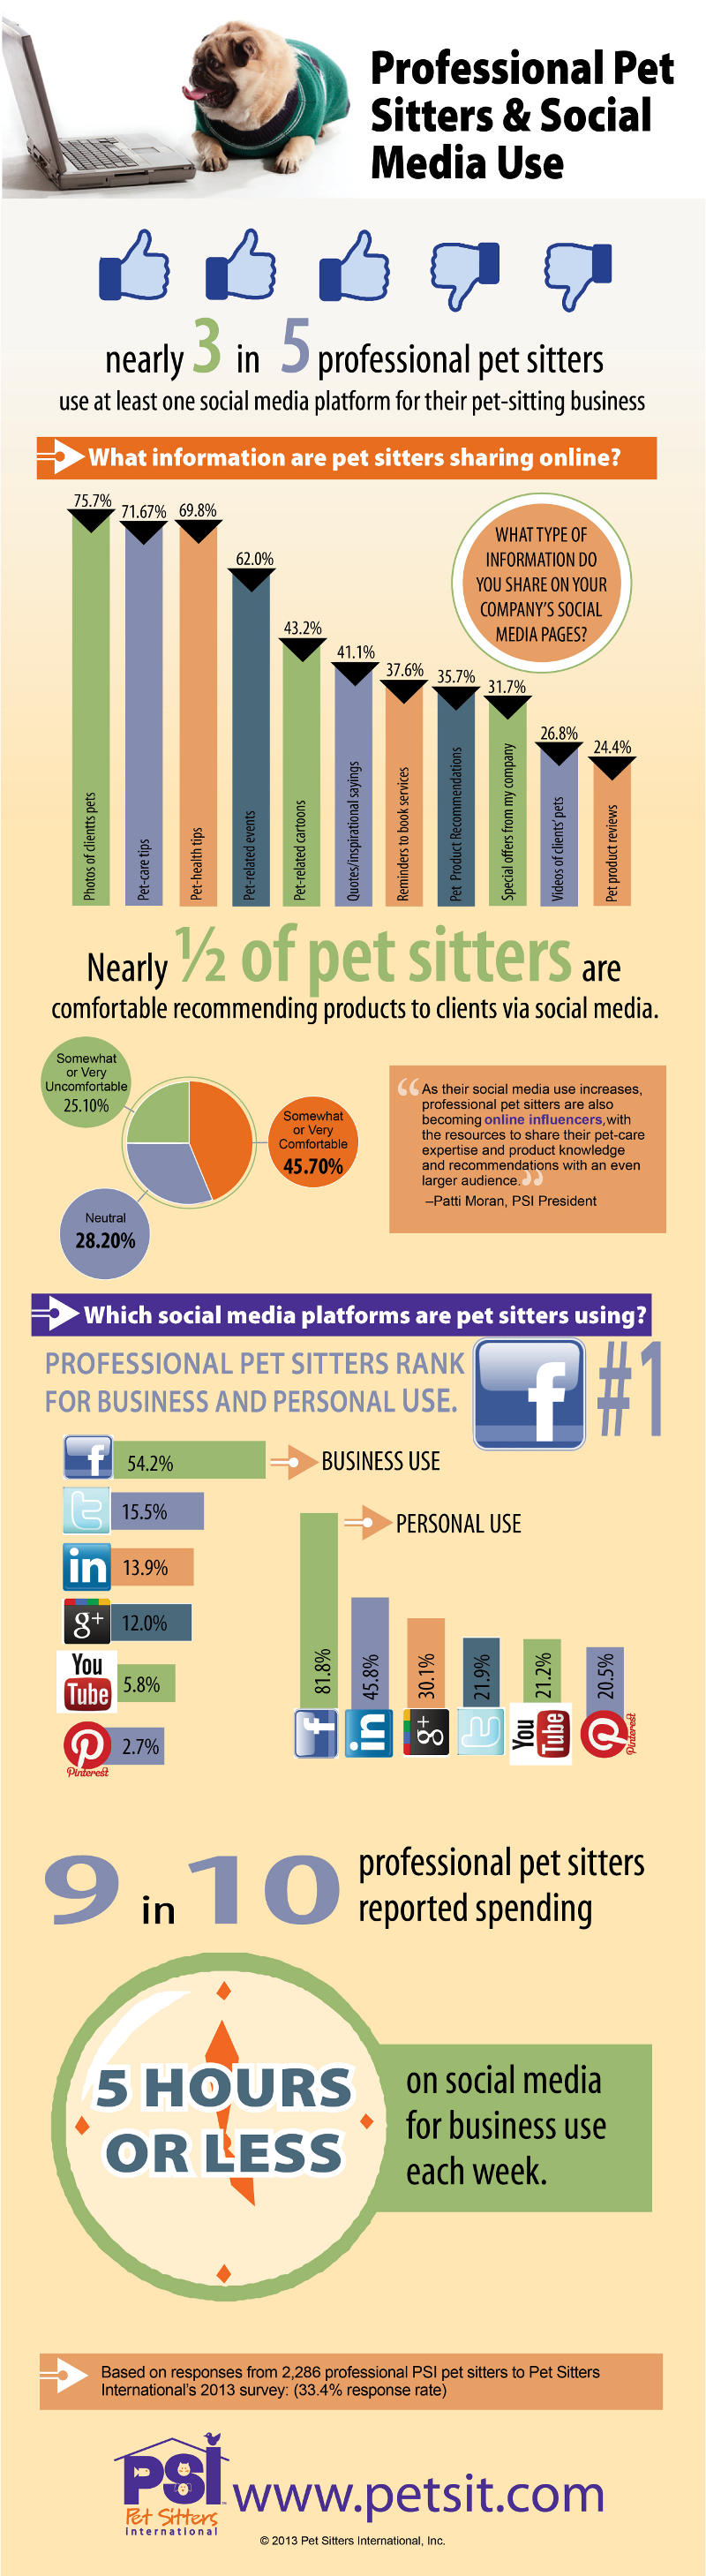 Pet Sitters Social Media Marketing Trends